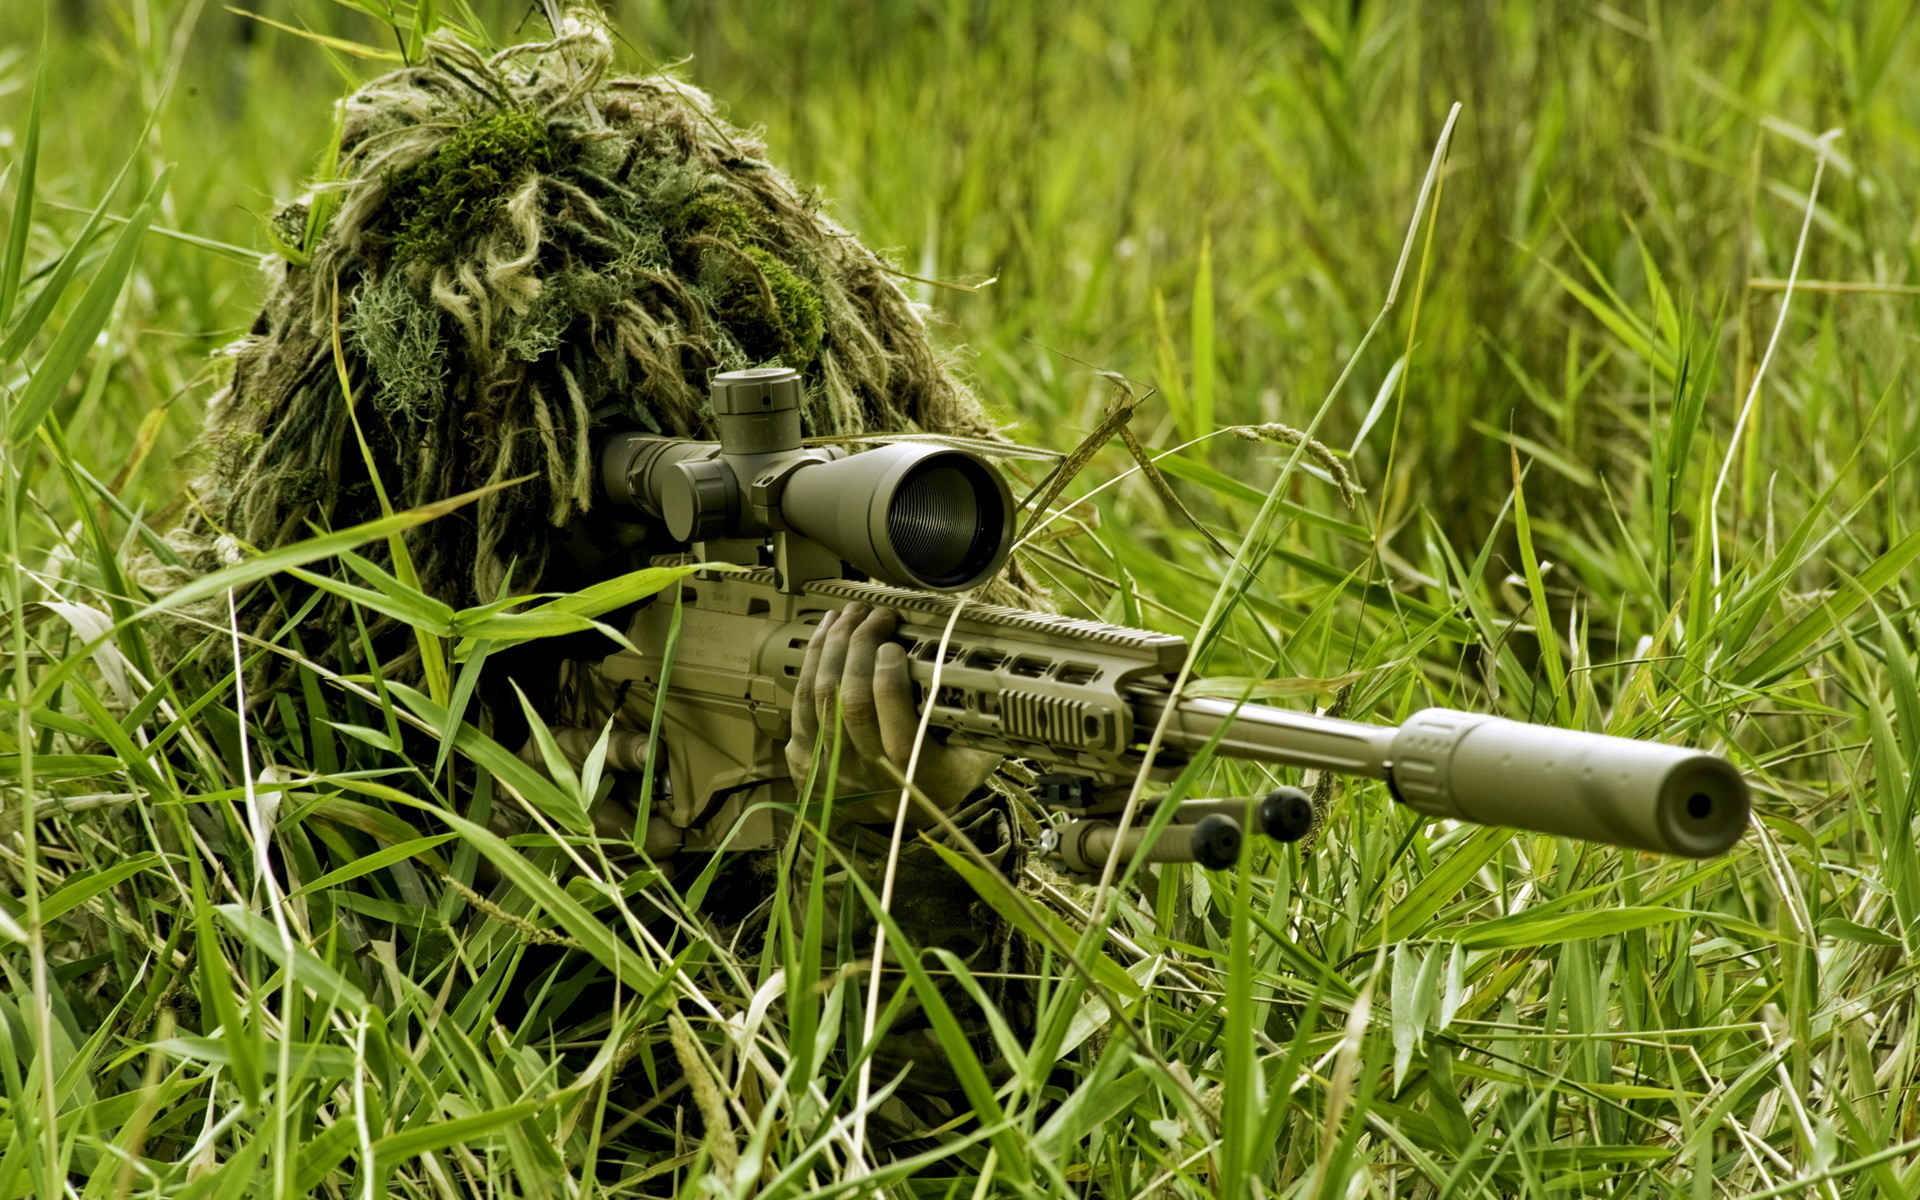 Wallpaper Sniper rifle Snipers Soldiers Camouflage Army 1920×1200